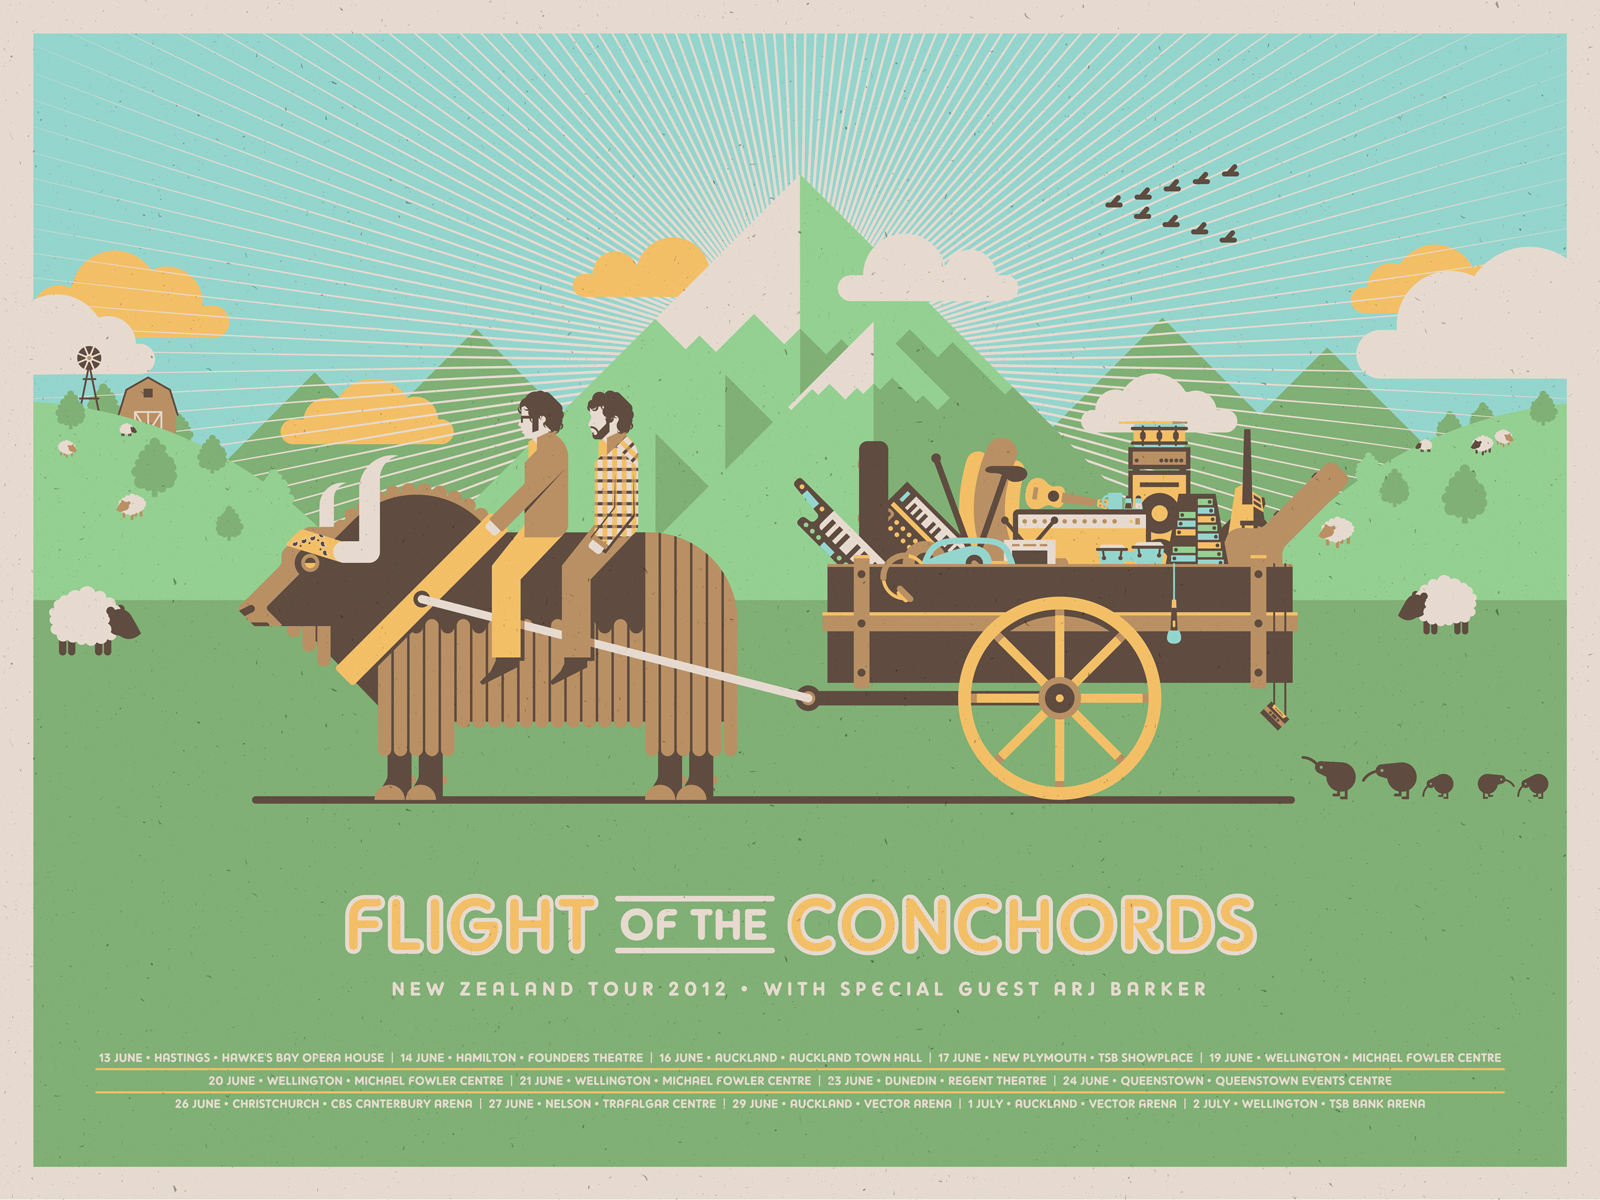 Flight Of The Conchords Blog Dkng